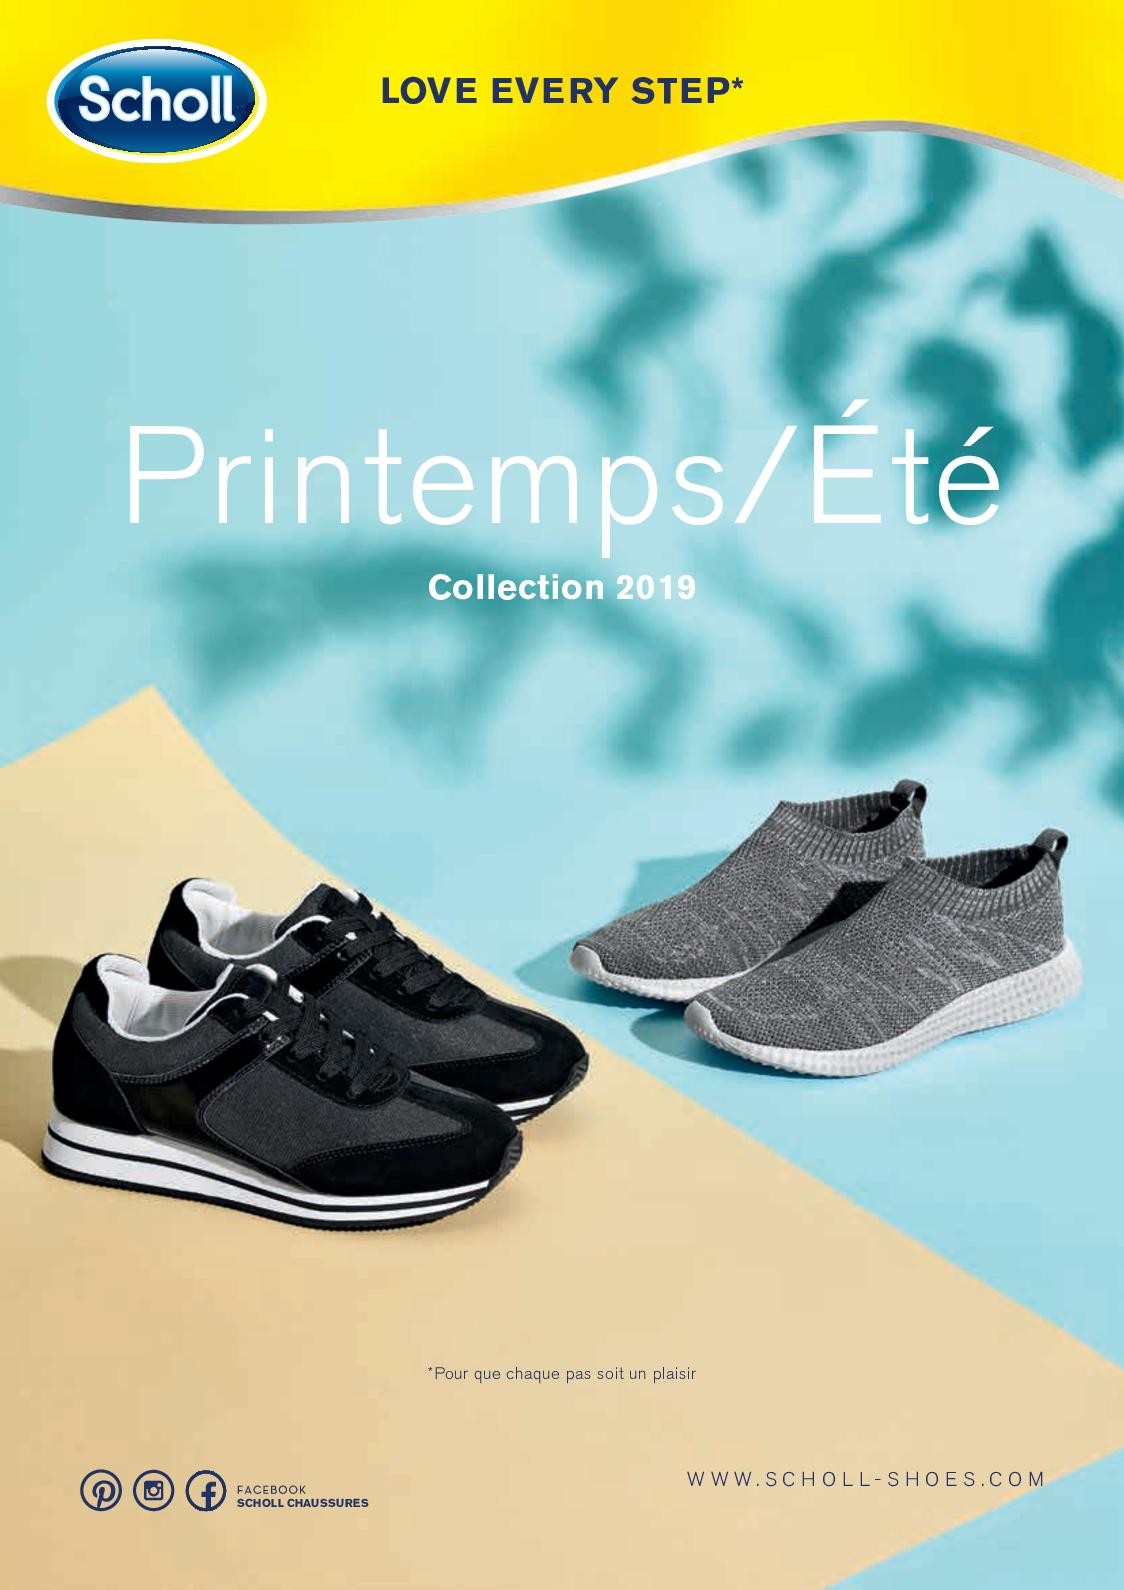 Chaussures Catalogue Calaméo Scholl Pe2019002 Collection 8w0OPXnk